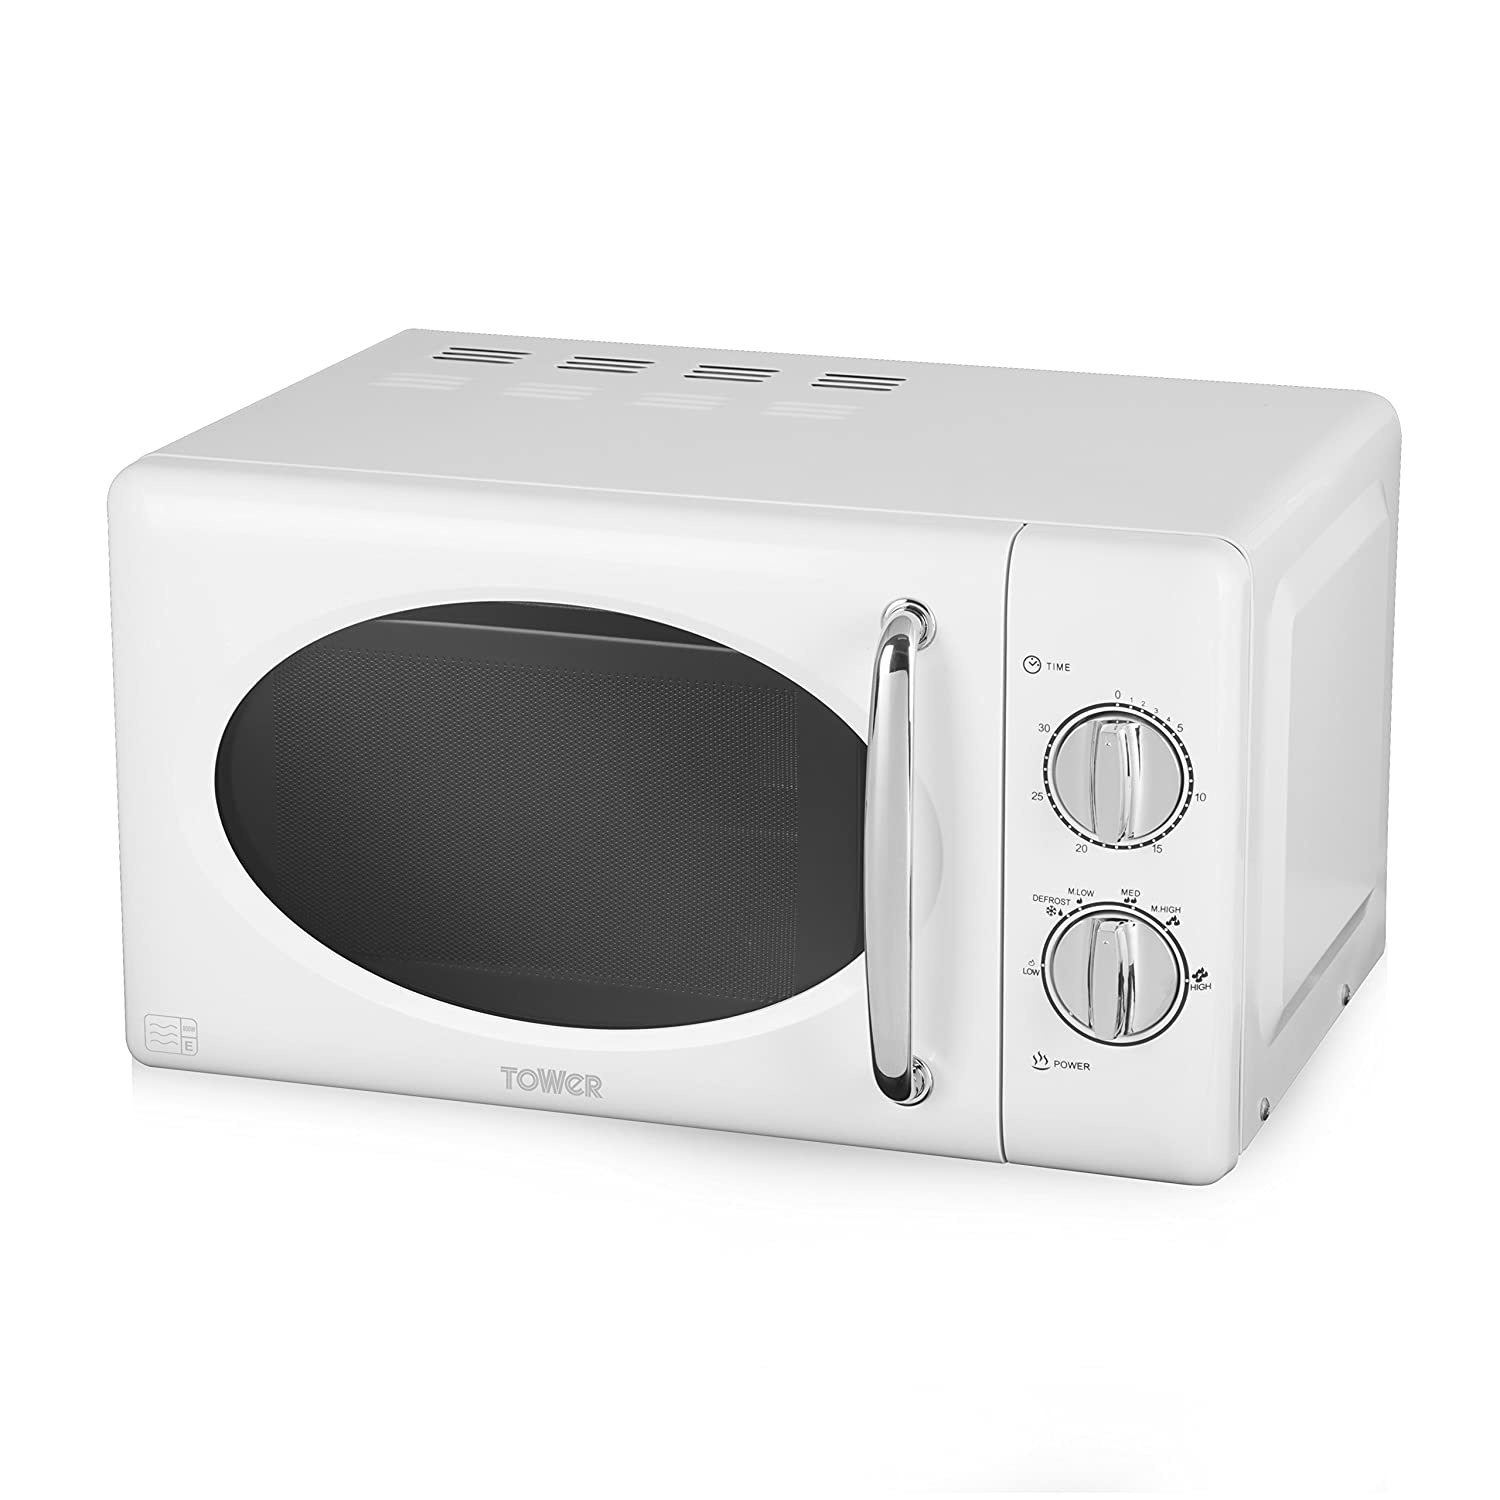 Tower T24017 Manual Solo Microwave with Full Stainless Steel Interior, 800 W, 20 liters, White